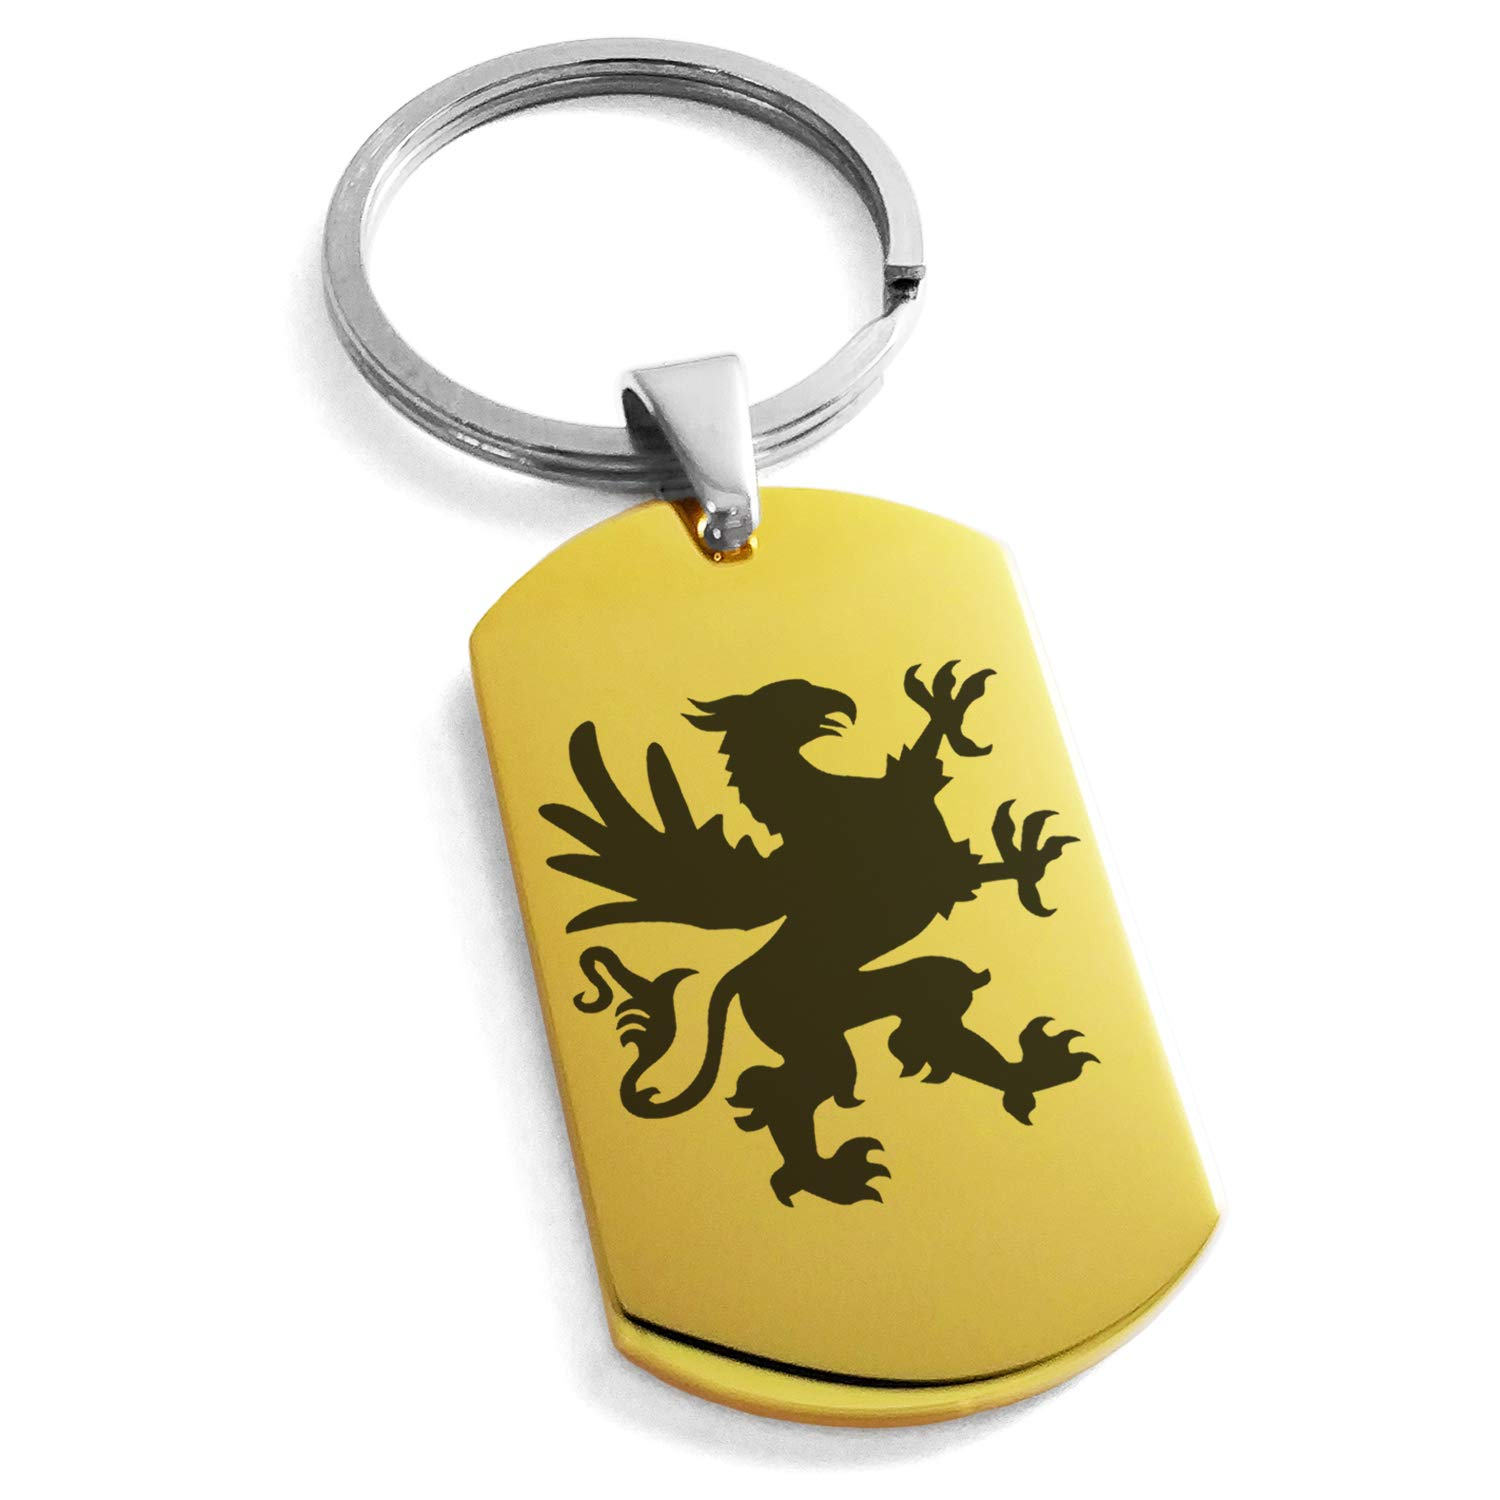 Tioneer Gold Plated Stainless Steel Grandiose Griffin Engraved Dog Tag Keychain Keyring